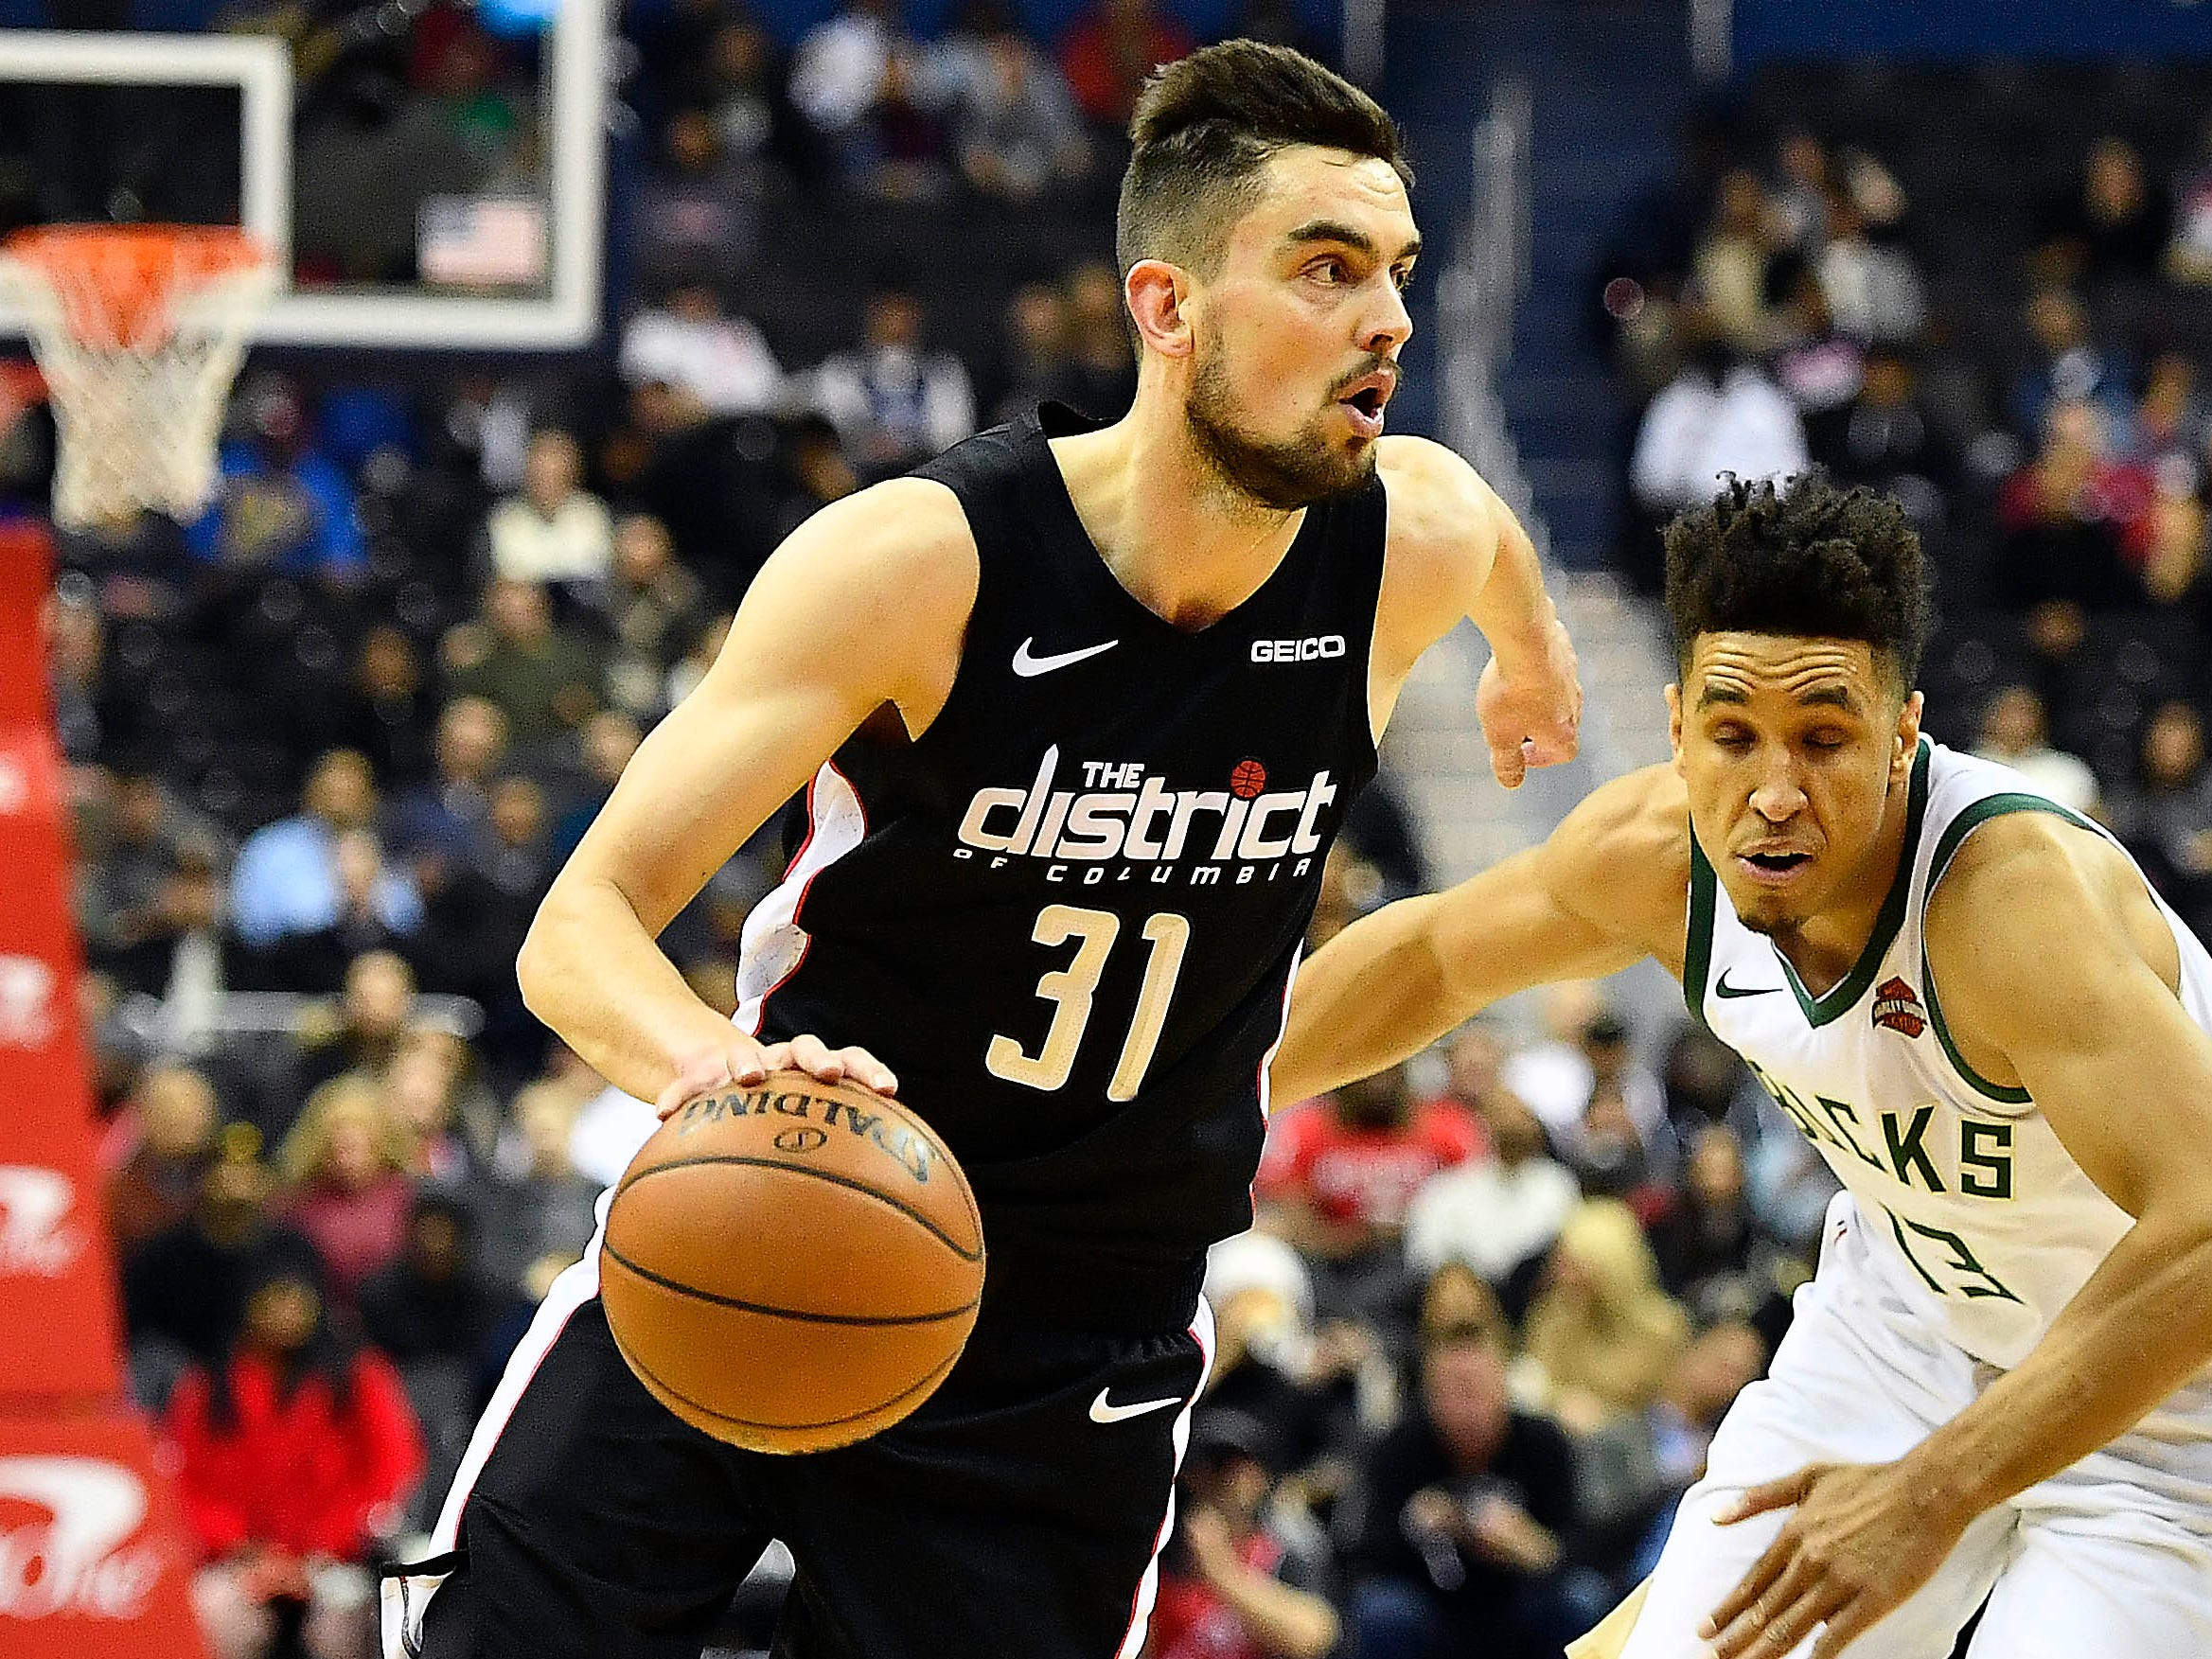 50. Tomas Satoransky, Wizards (Jan. 11): 18 points, 12 rebounds, 10 assists in 113-106 win over Bucks.